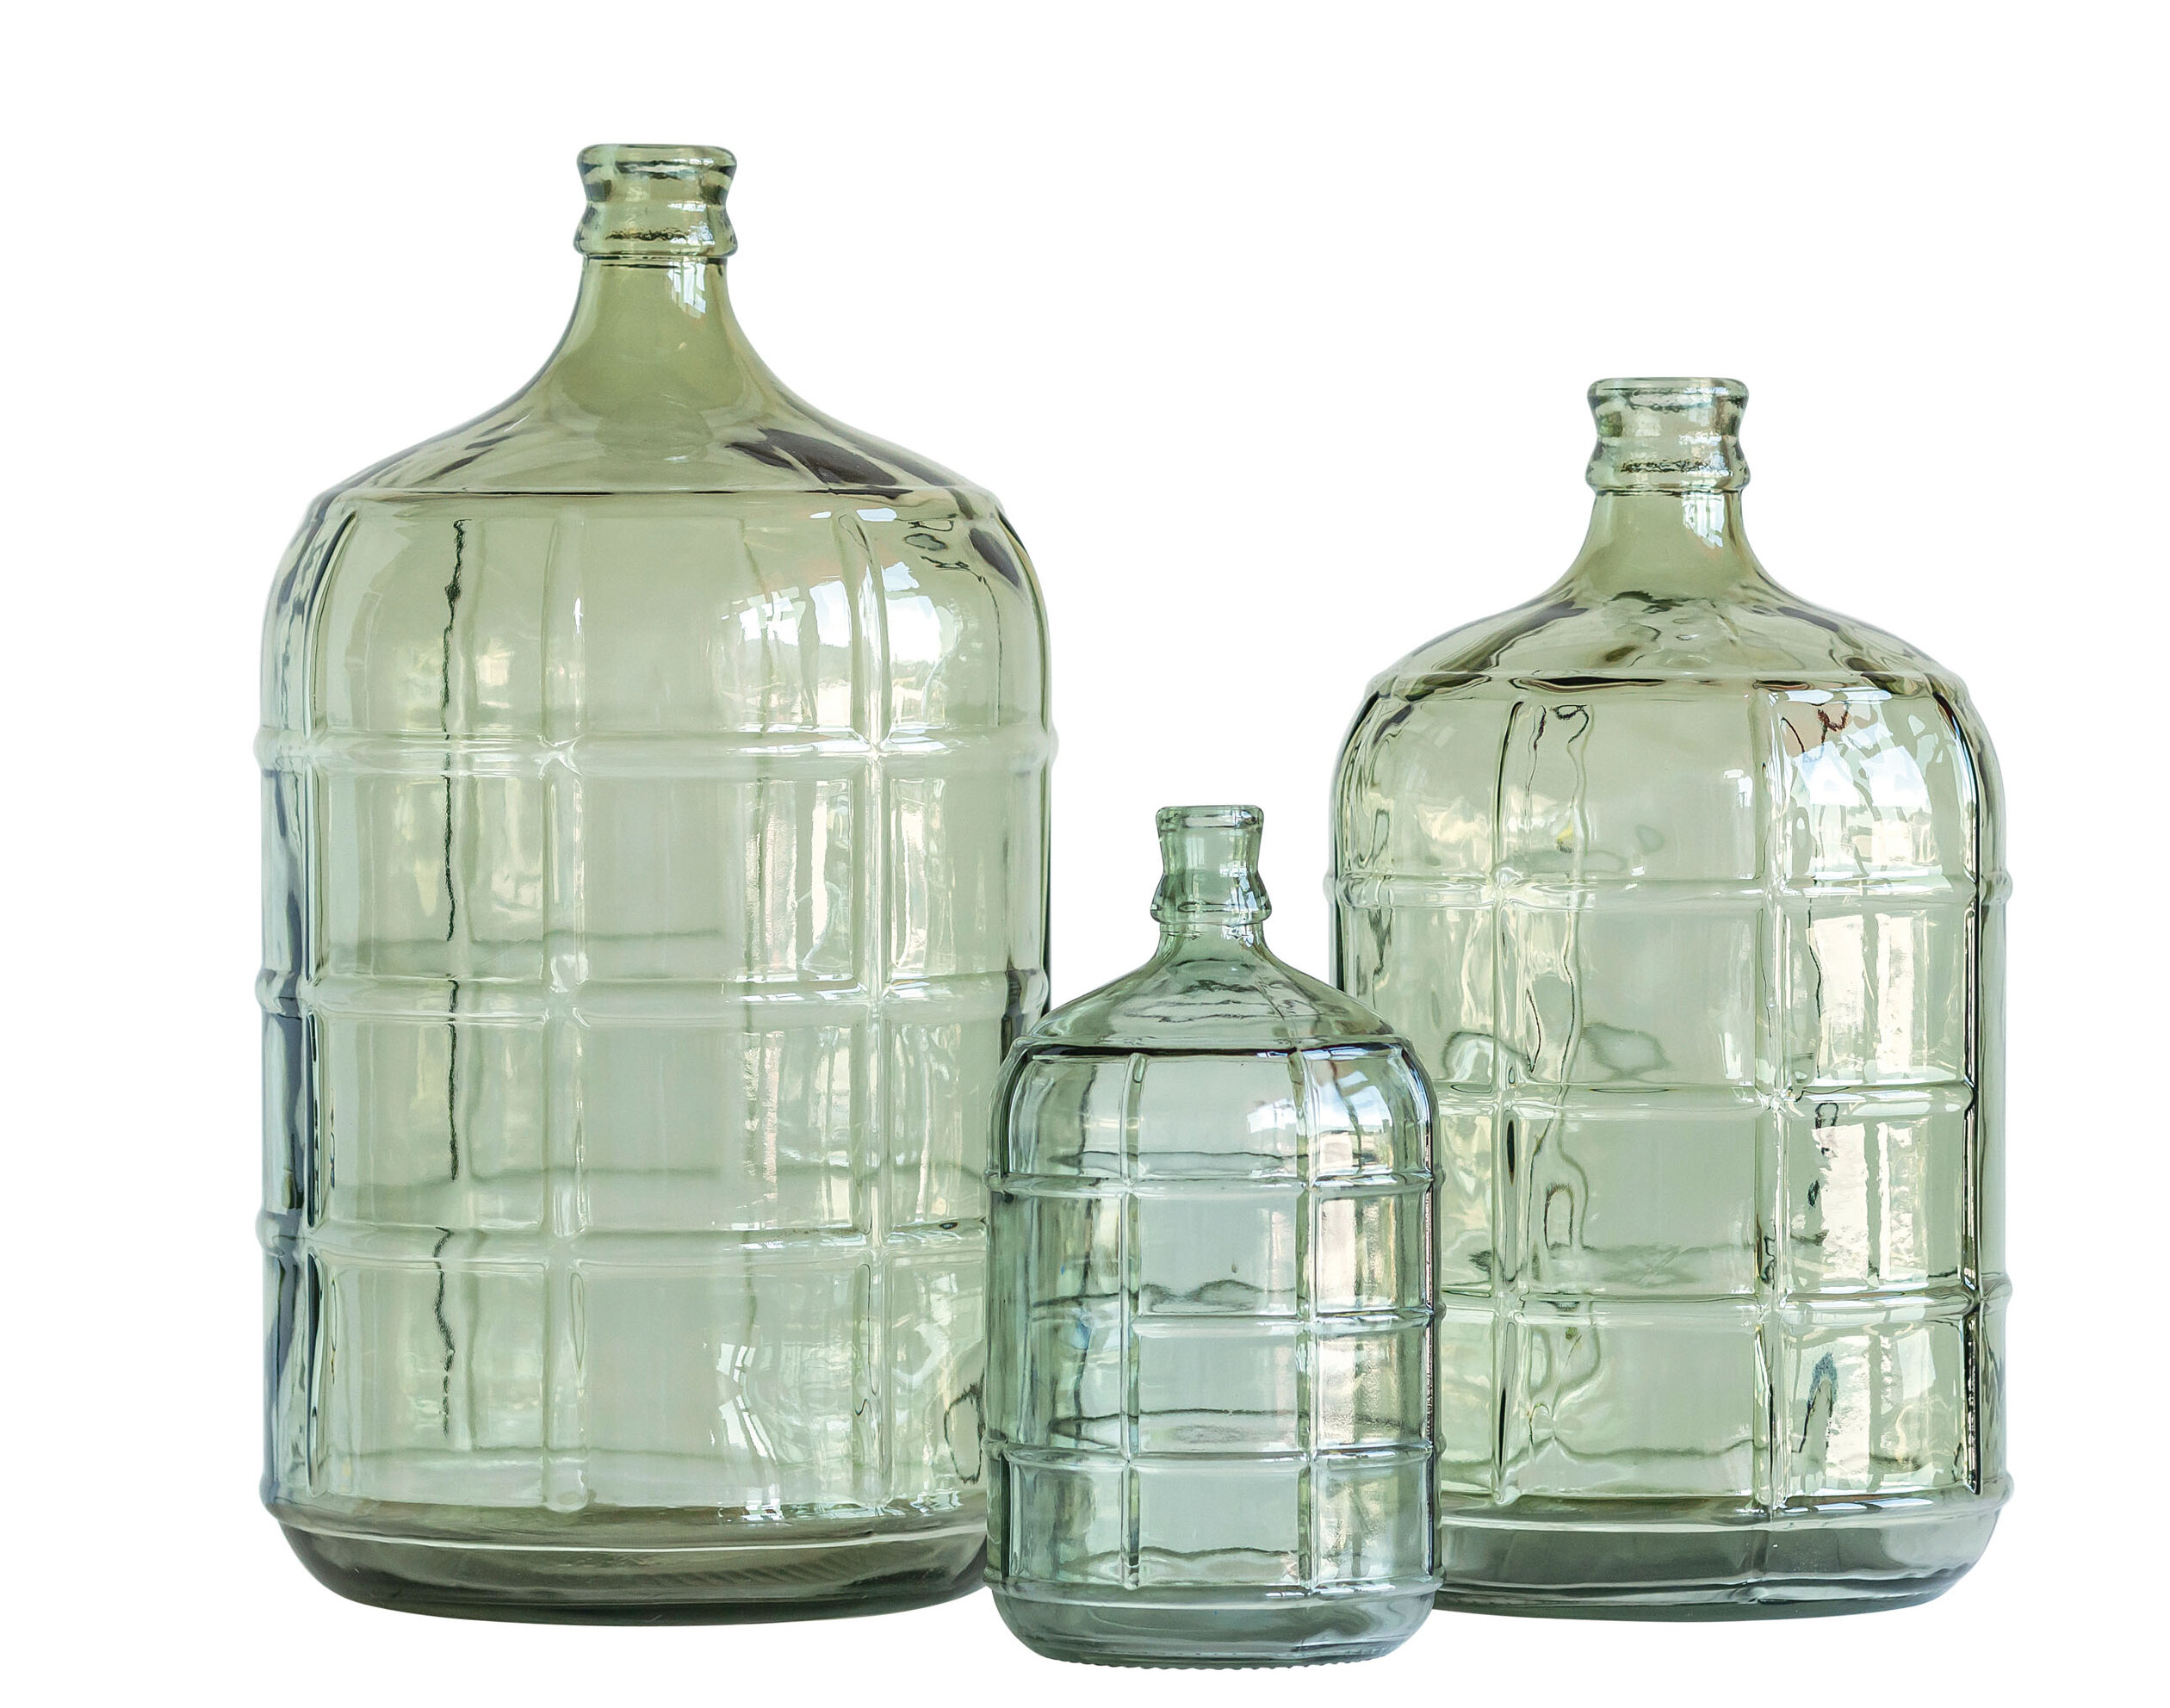 Kelling Large Transparent Reproduction Glass Decorative Bottles